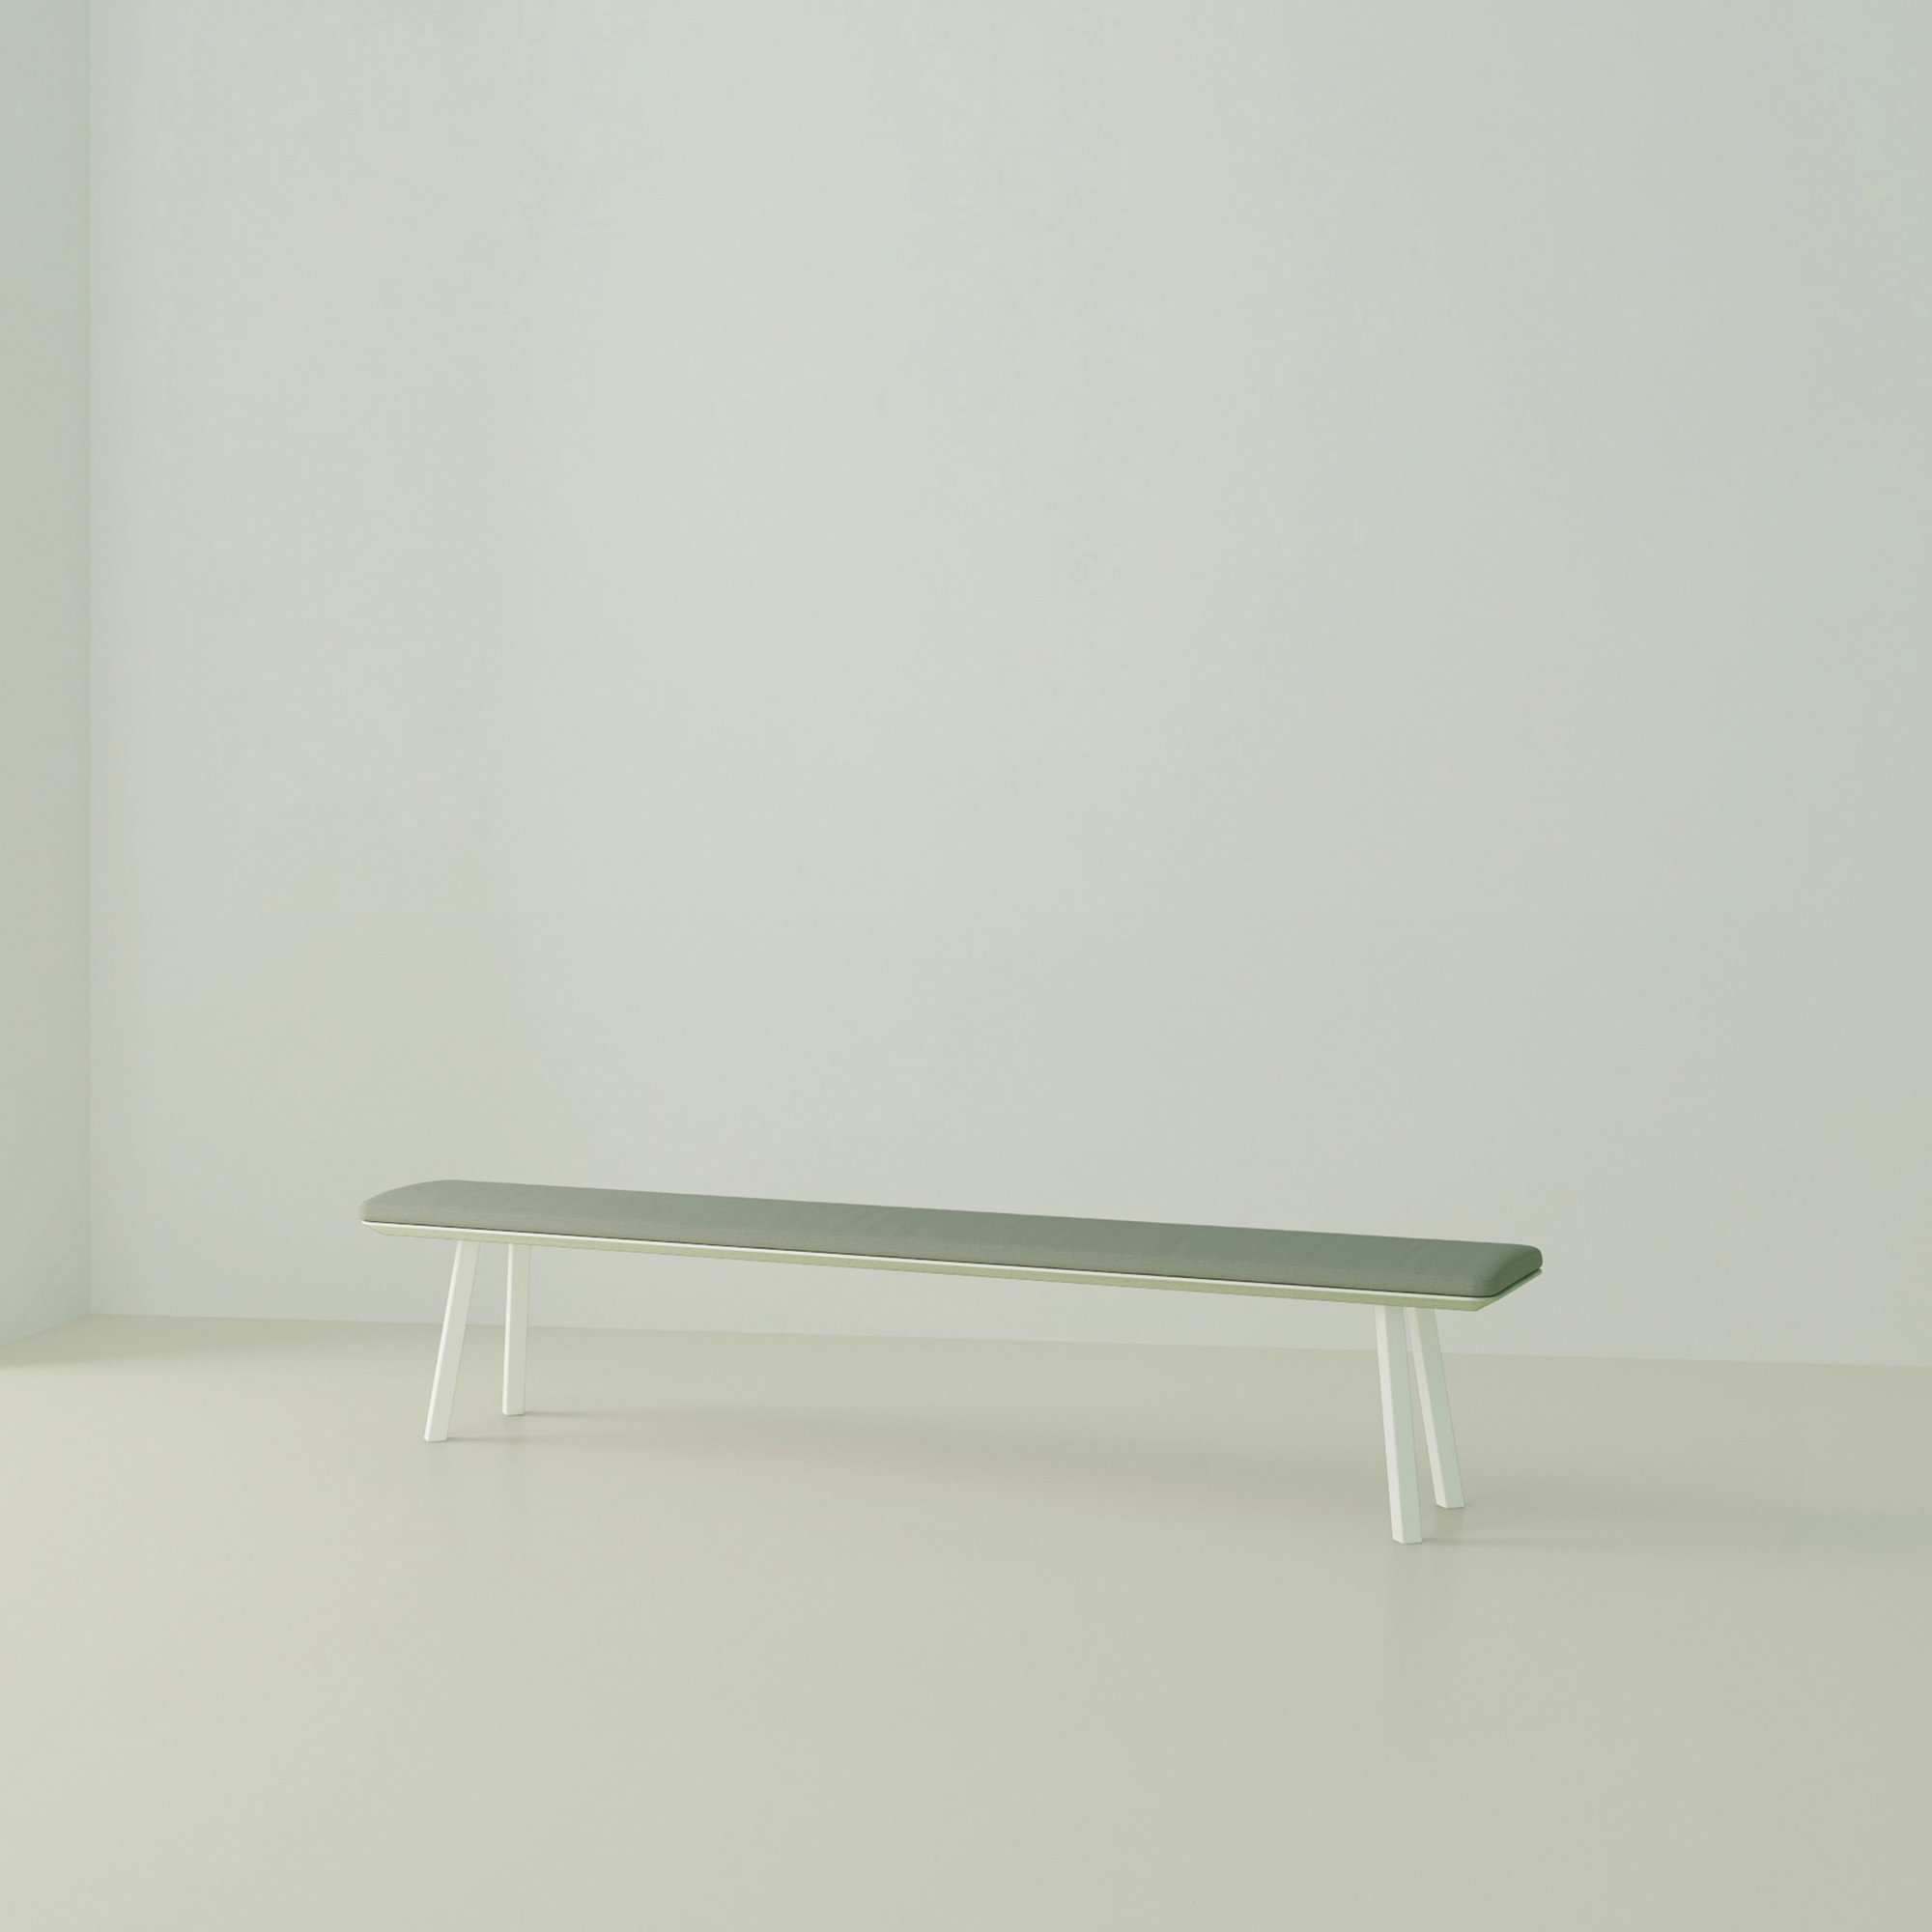 eettafelbank op maat | New Classic Bench Steel white powdercoating | Oak white lacquer | Studio HENK | Listing_image